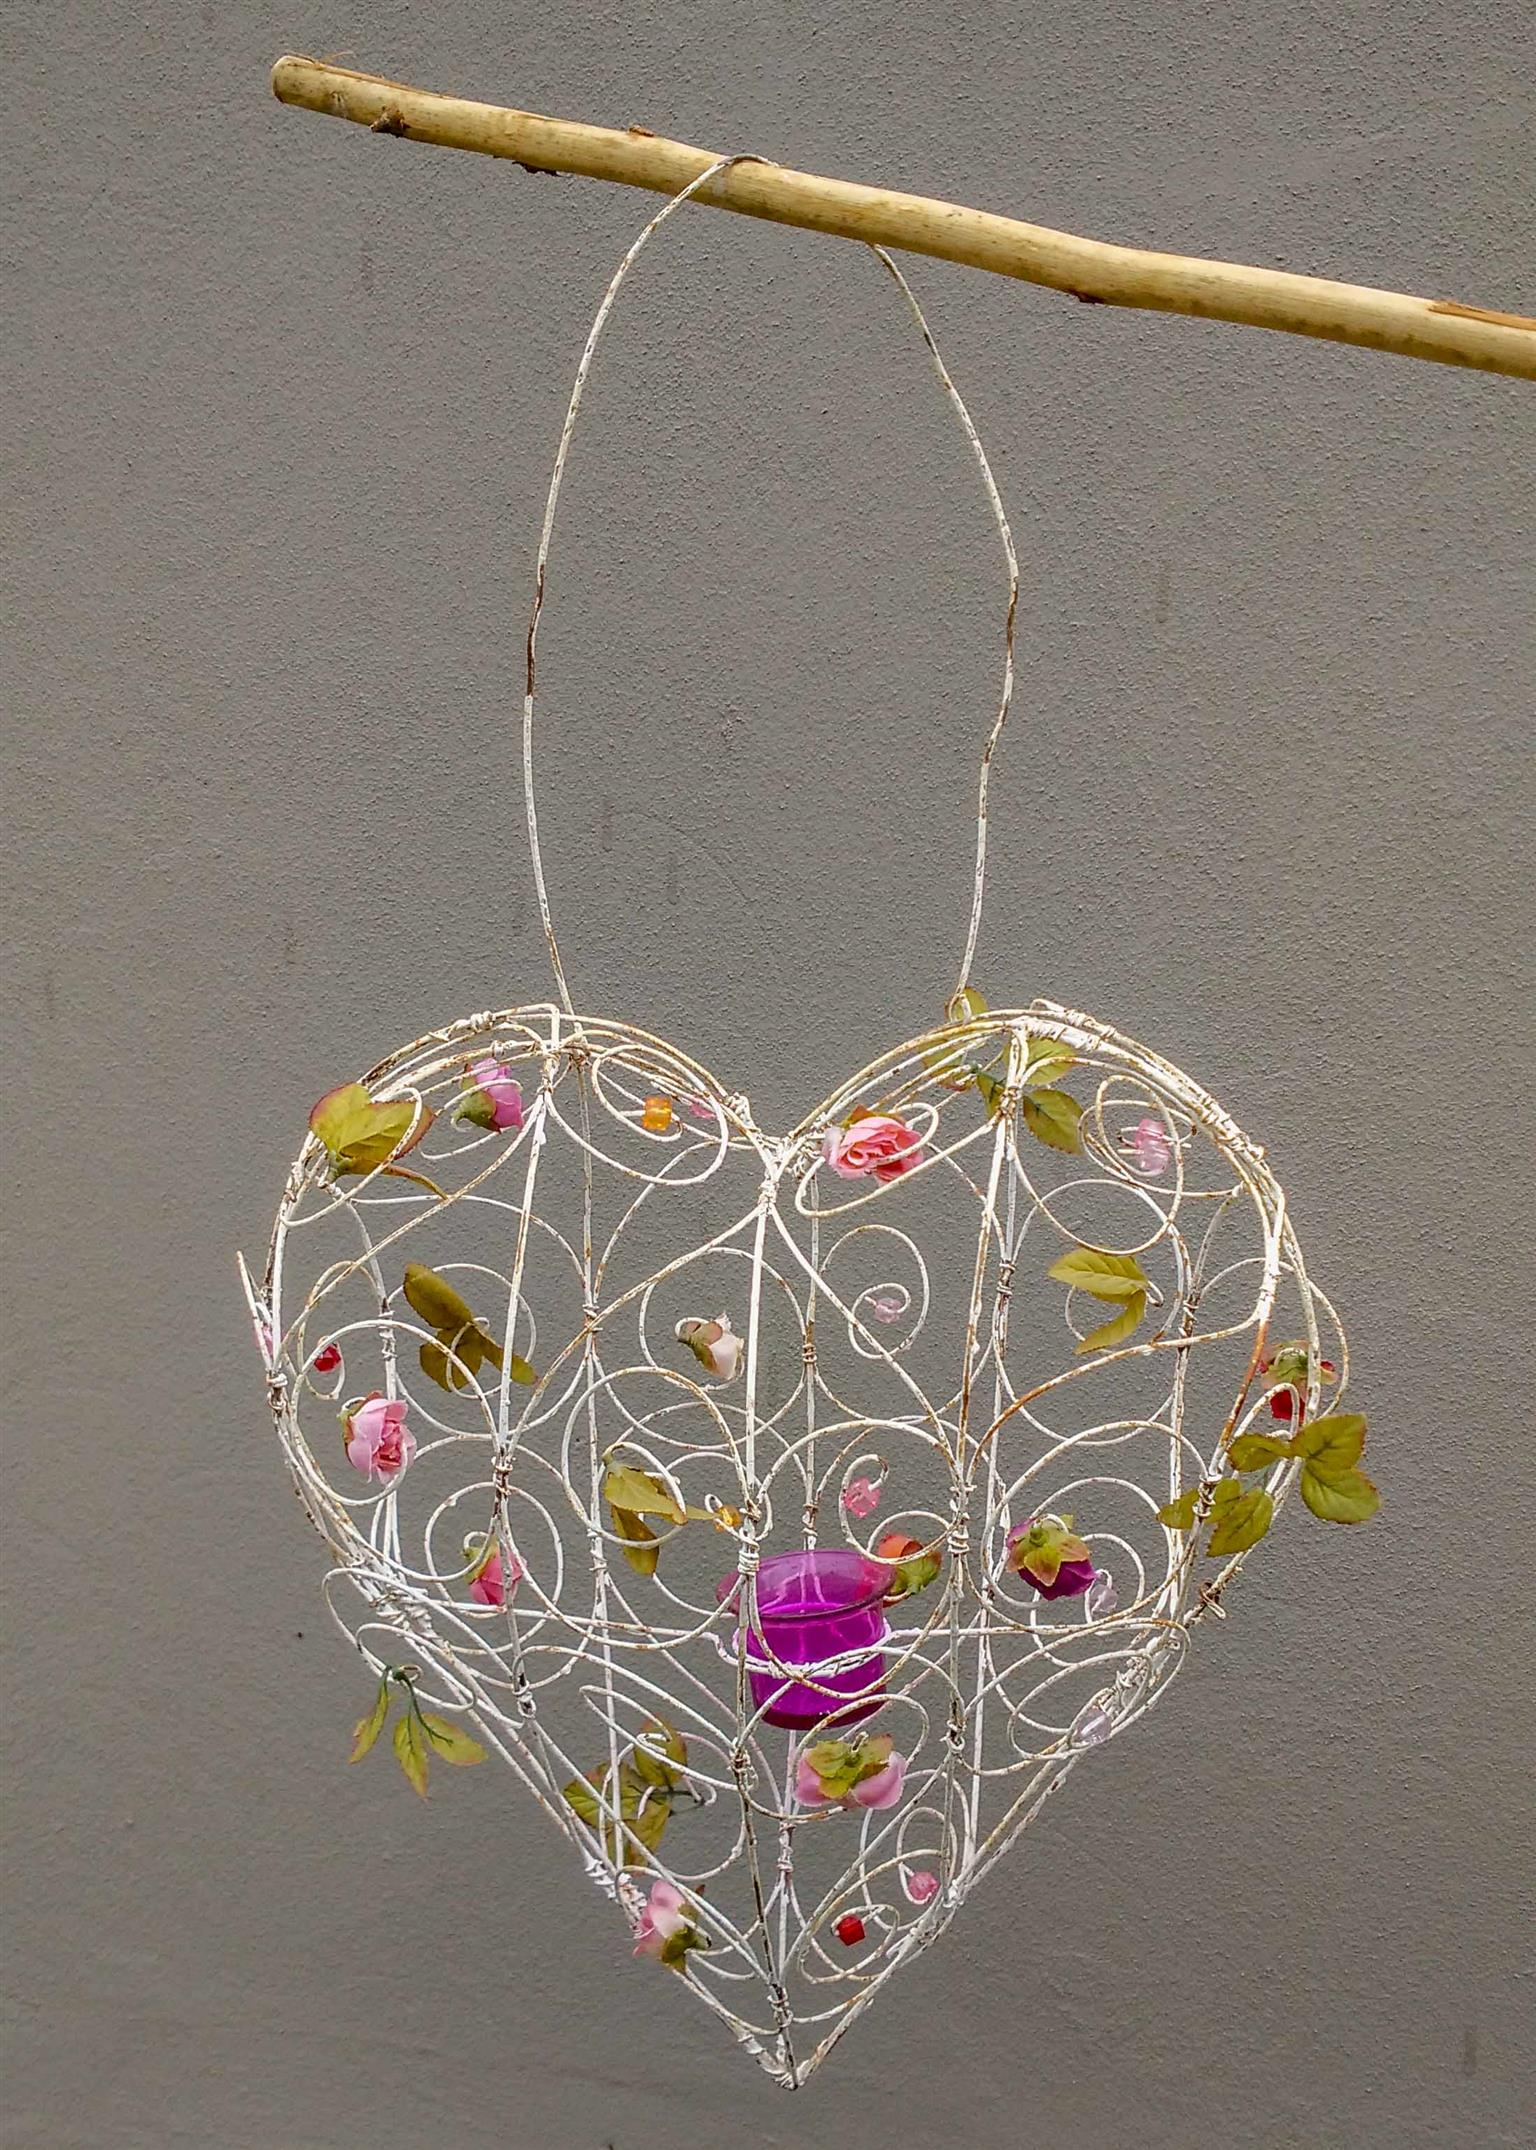 Nostalgic wire heart with built in candle-holder